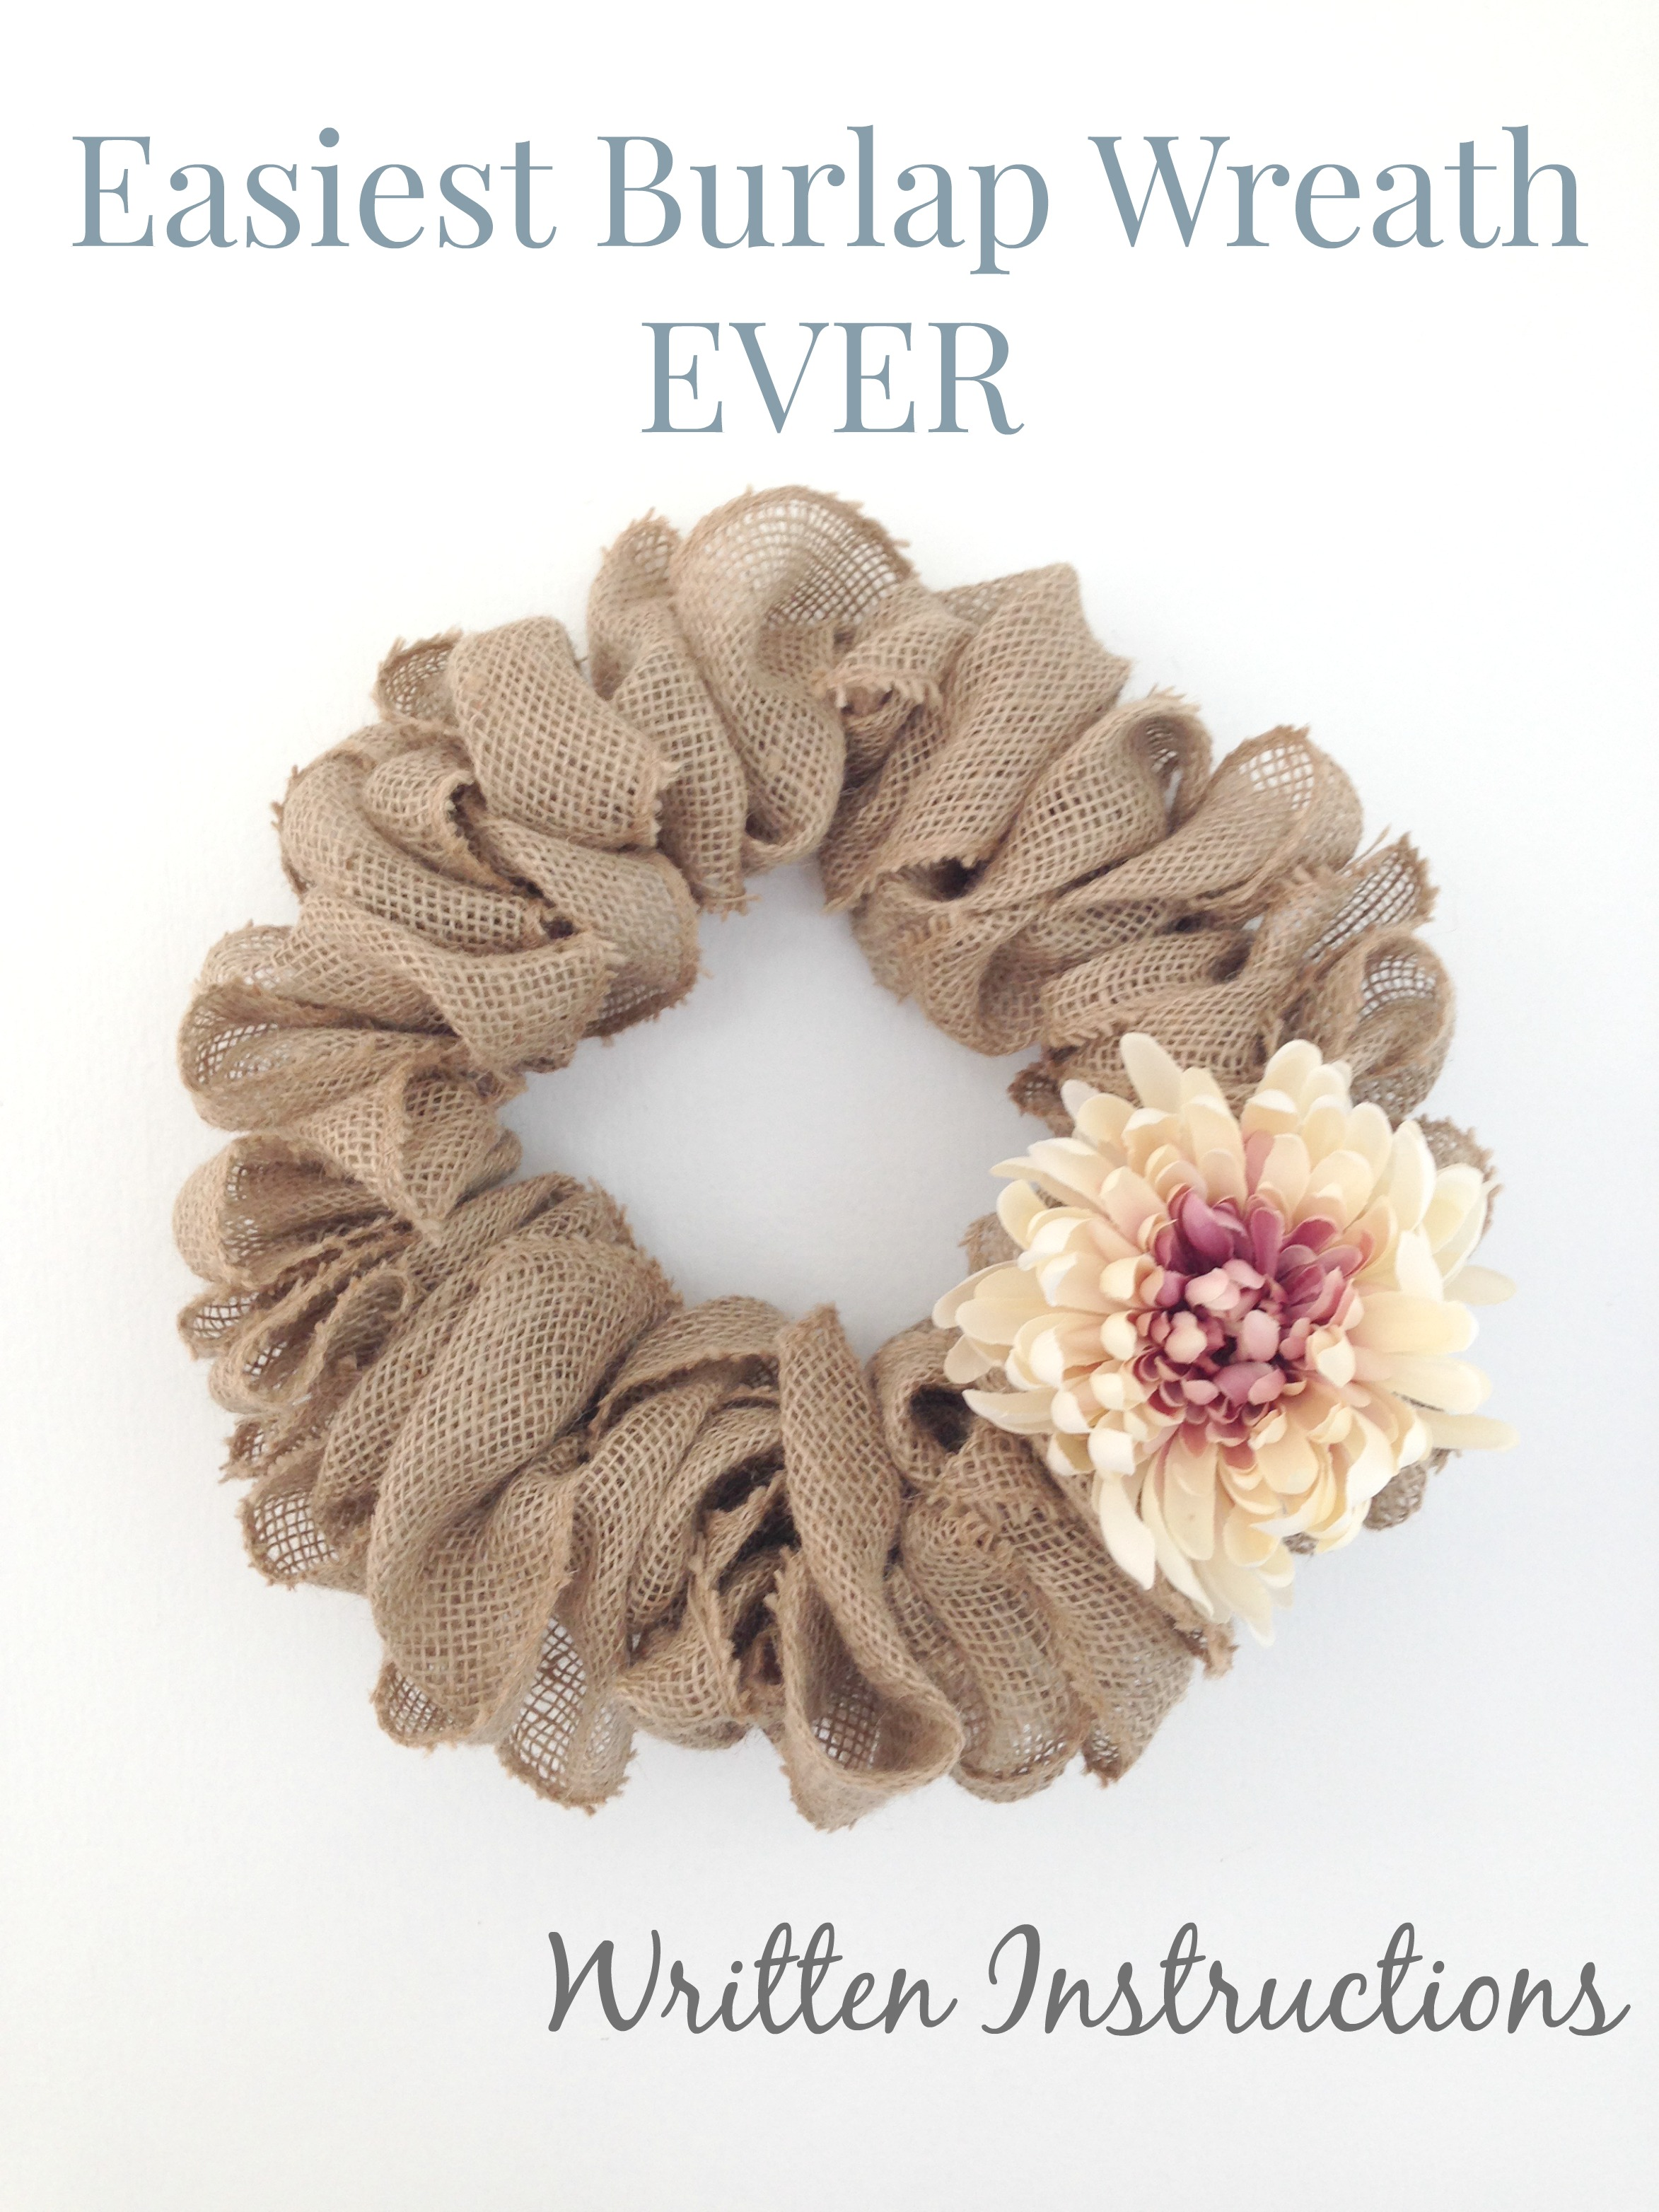 Easiest burlap wreath ever just call me homegirl for What to make with burlap